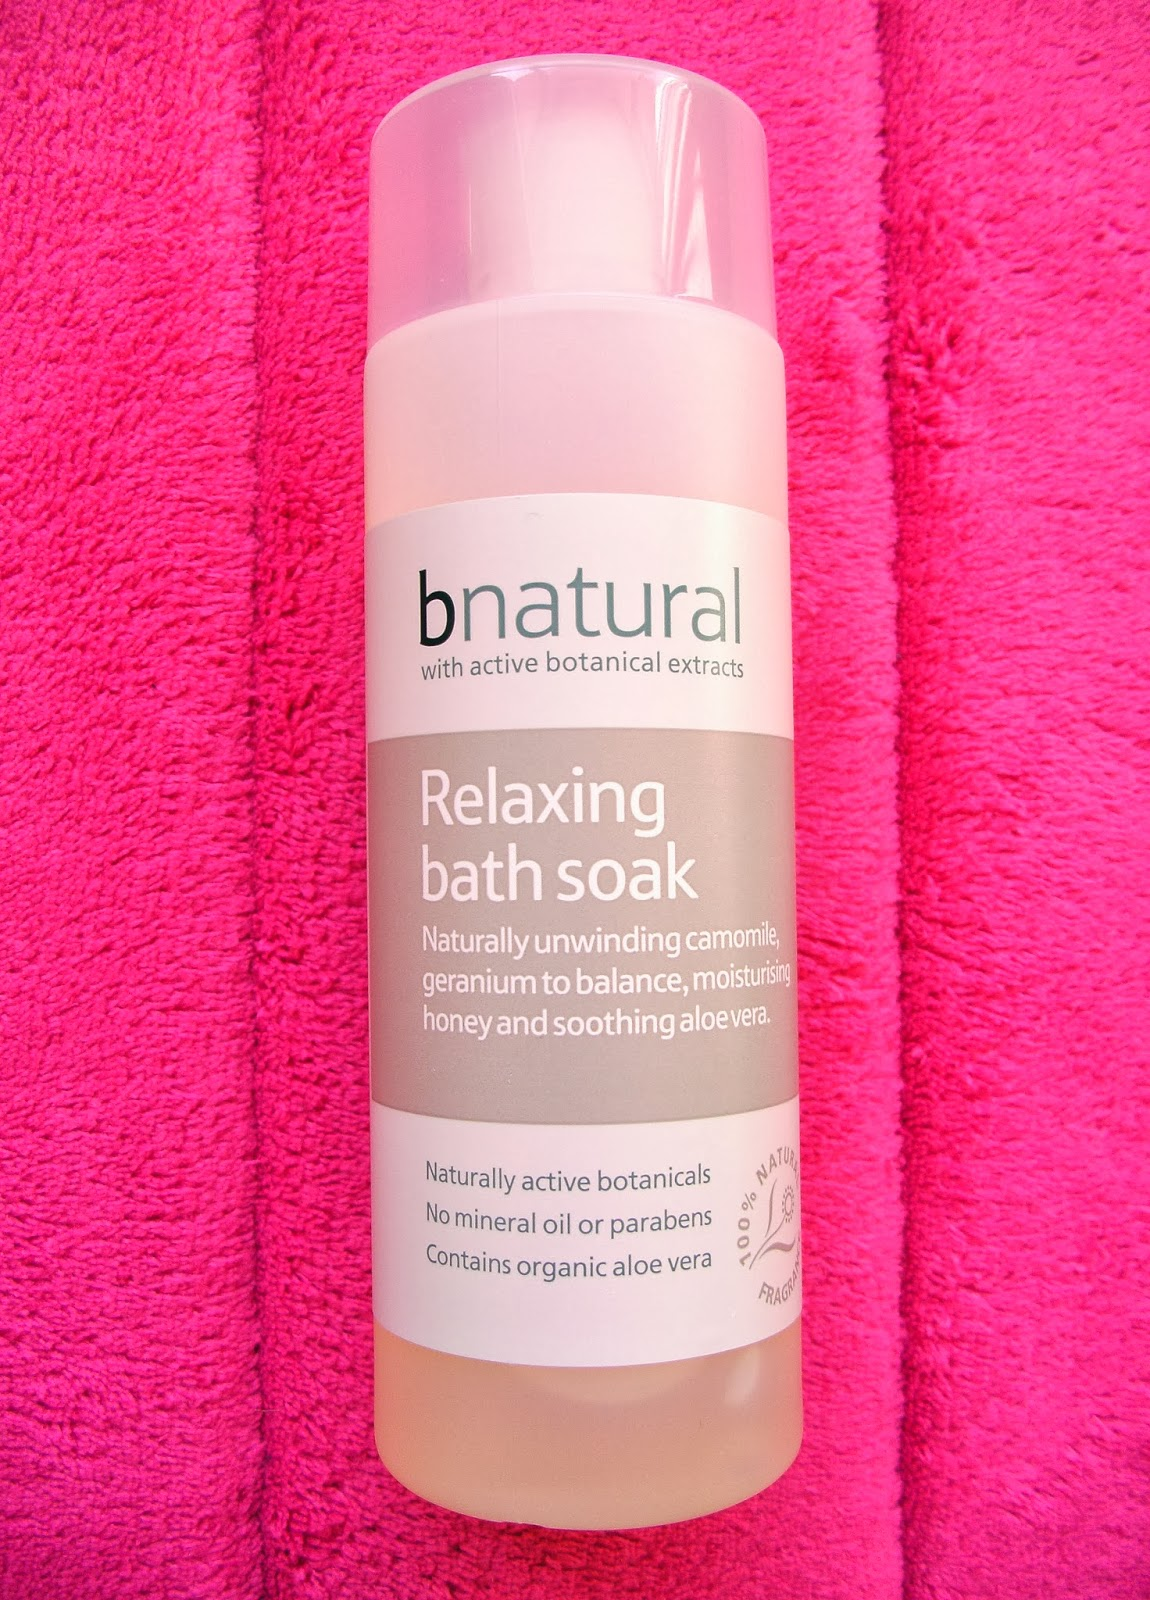 bnatural Relaxing Bath Soak